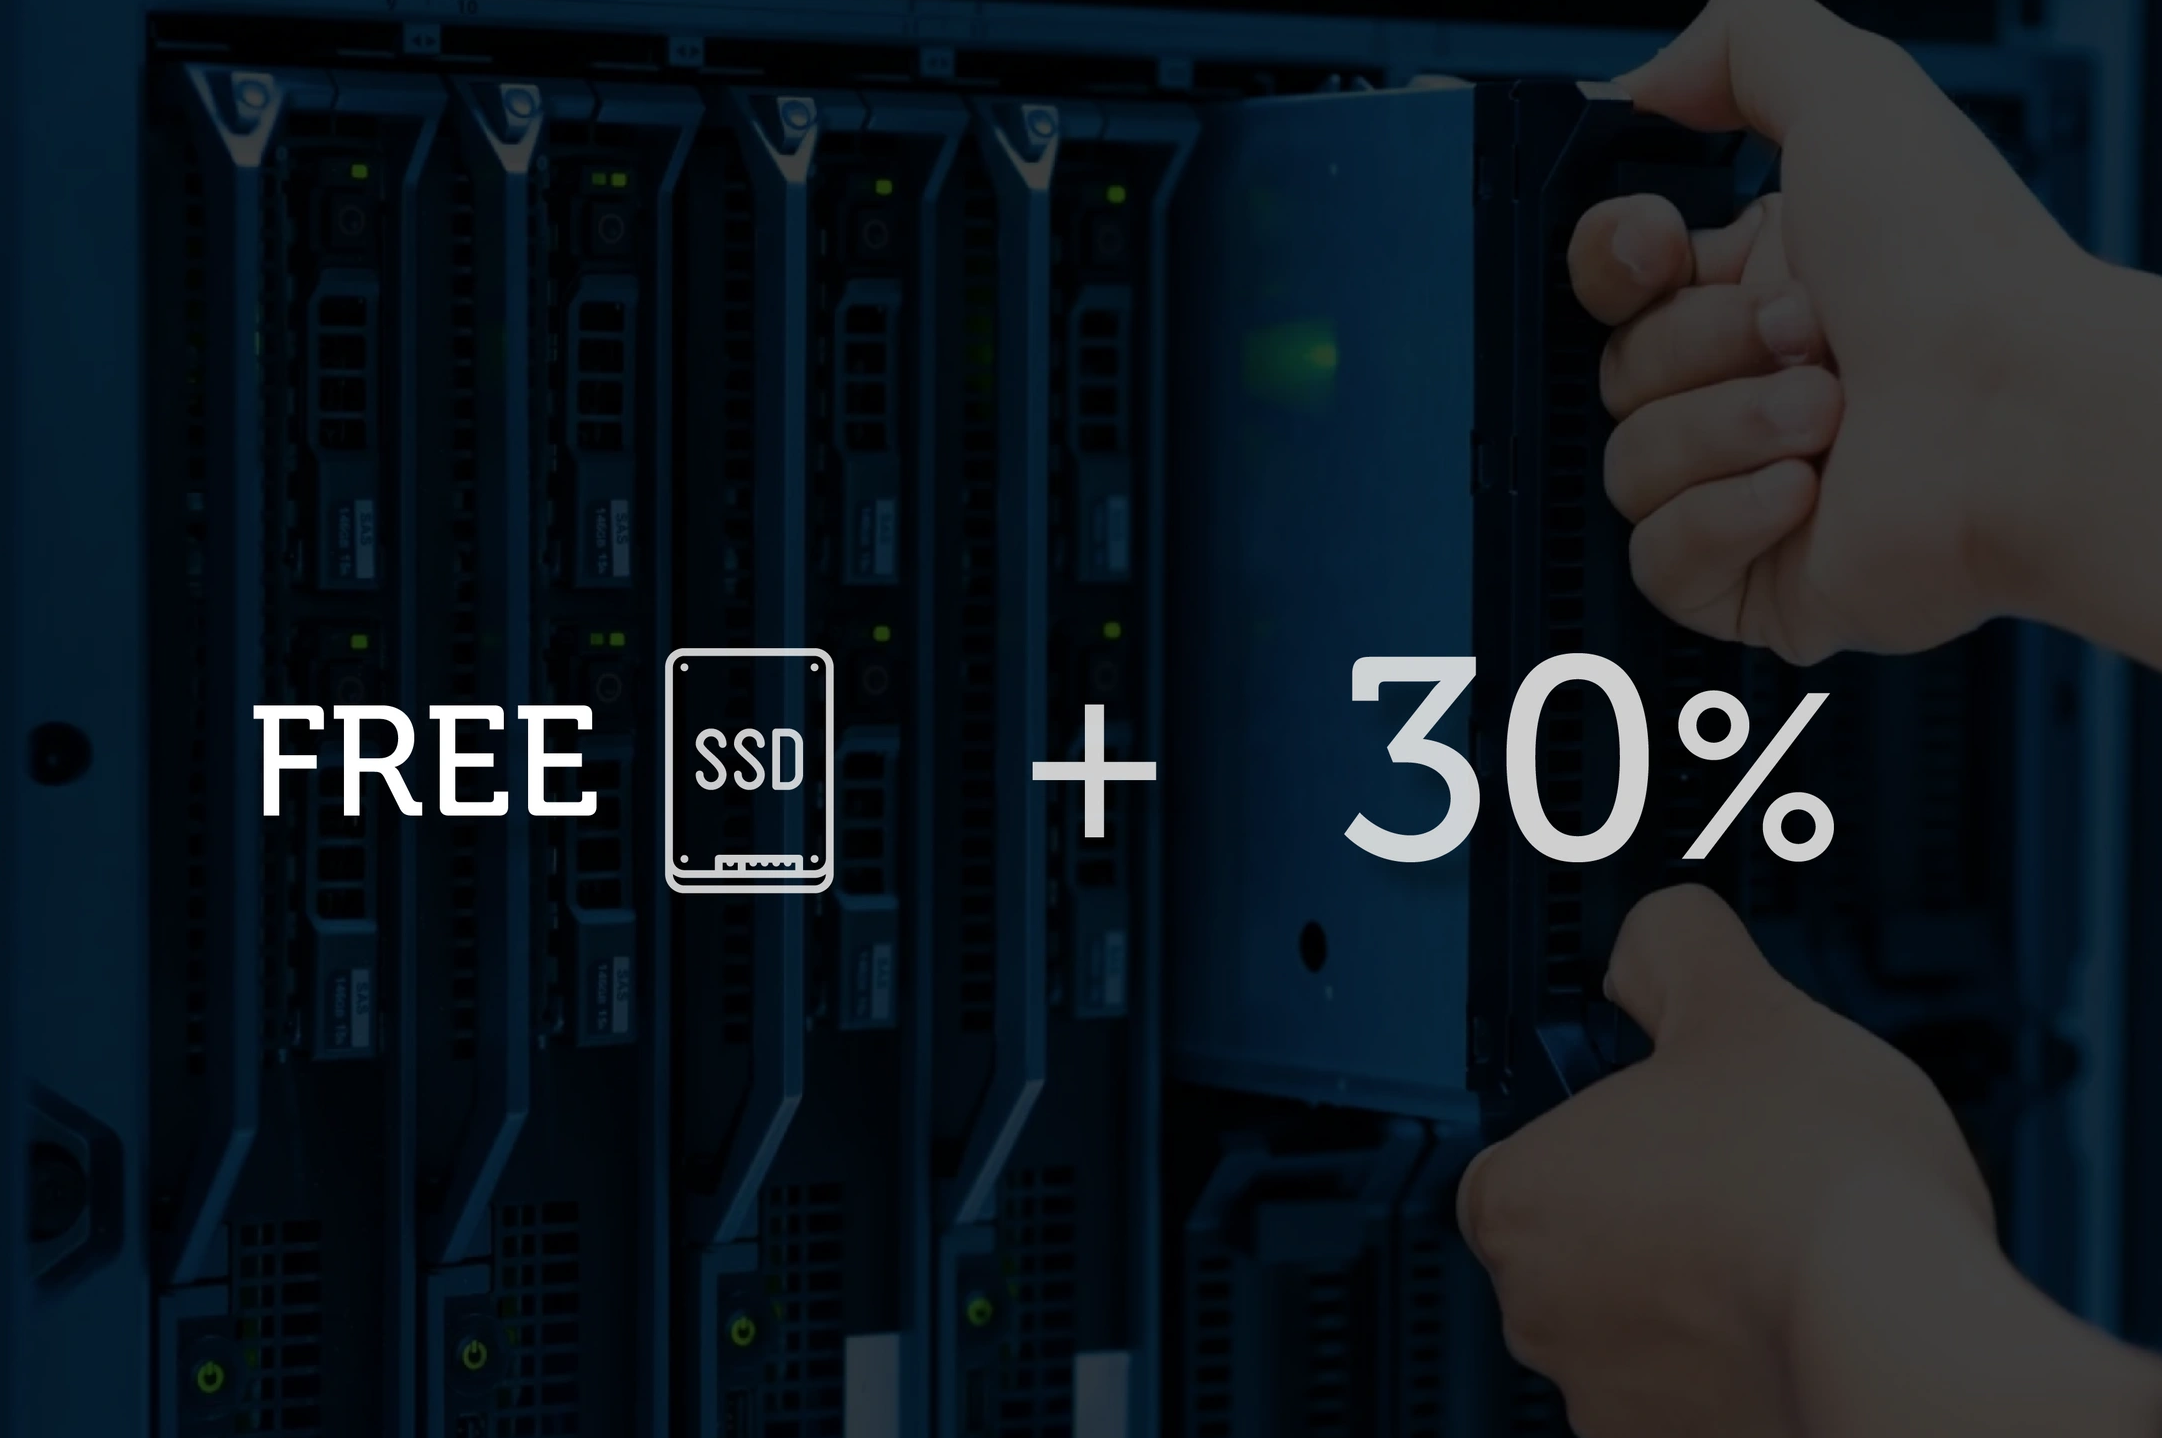 Cloud at Cost - Cloudatcost - Dedicated Servers with FREE SSD - 30% OFF